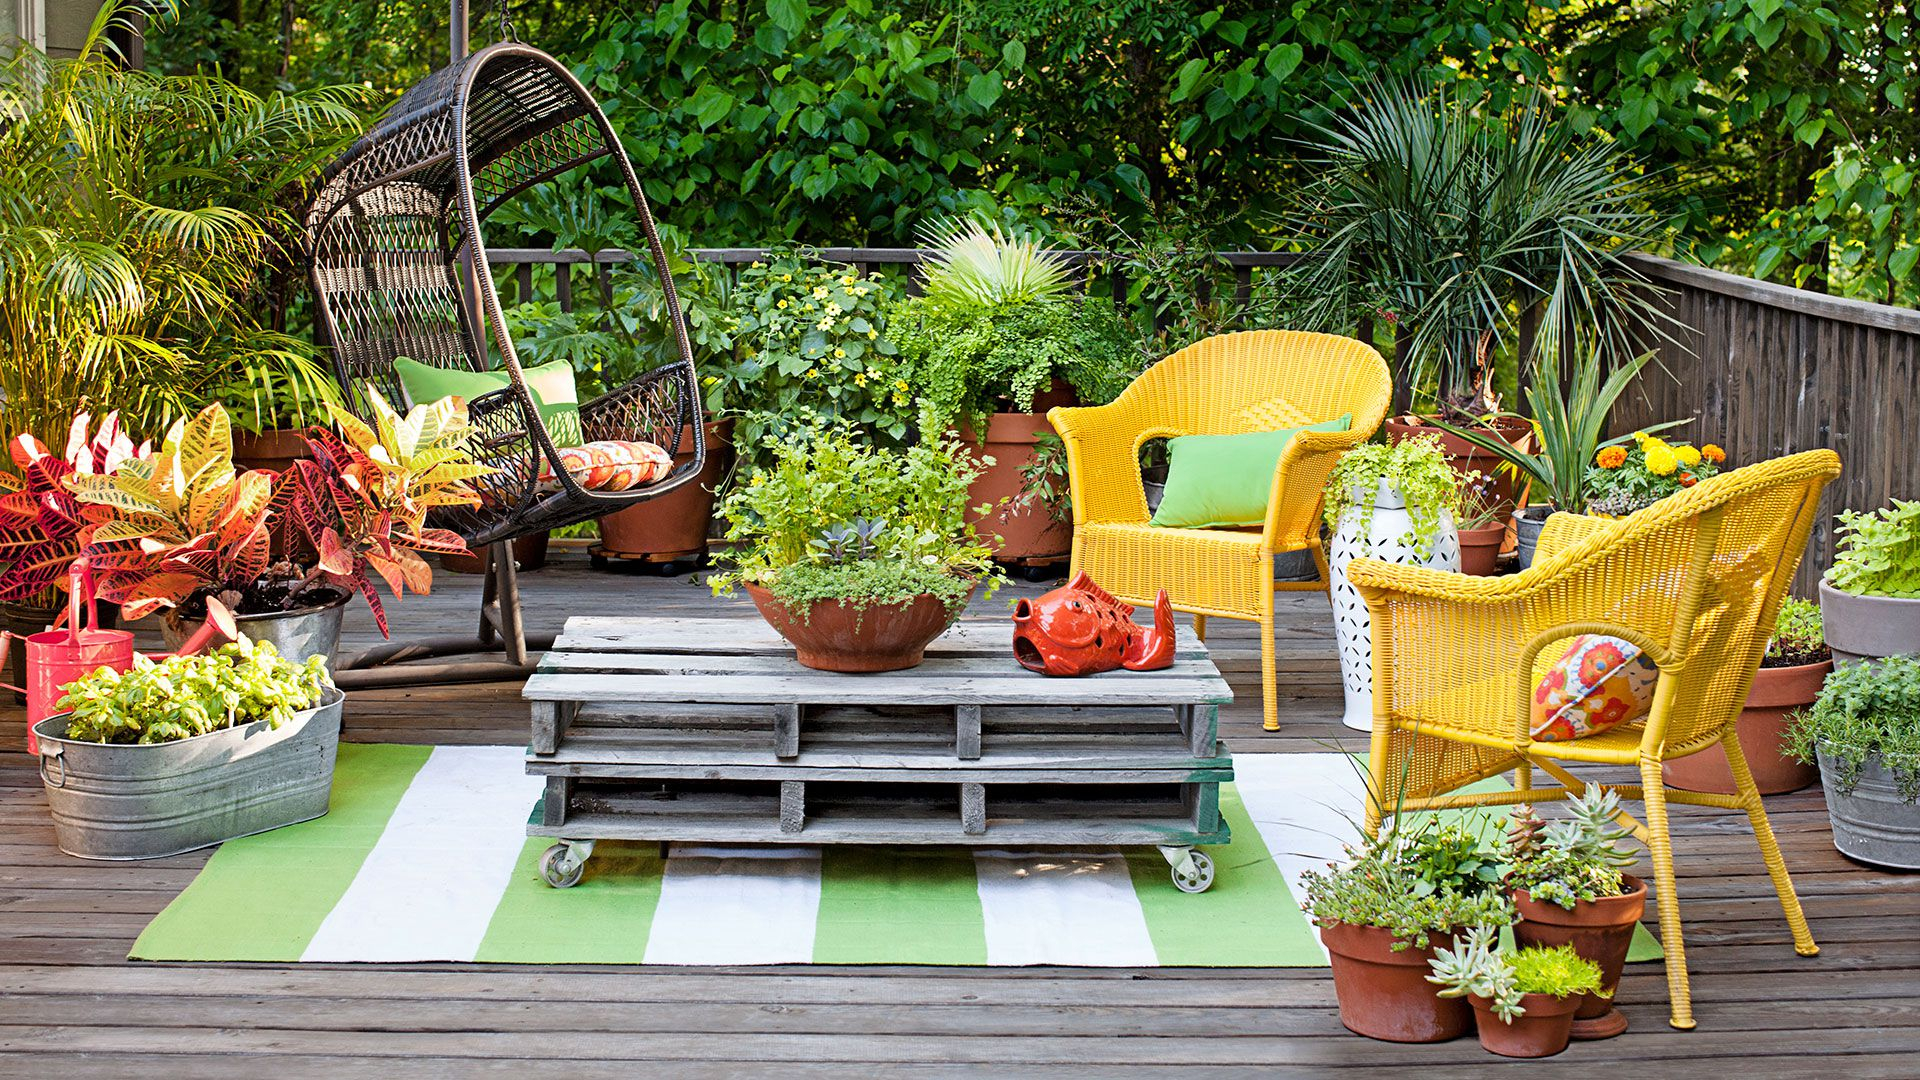 Backyard Decorating Ideas 9932 for 11 Awesome Initiatives of How to Craft Decorating The Backyard